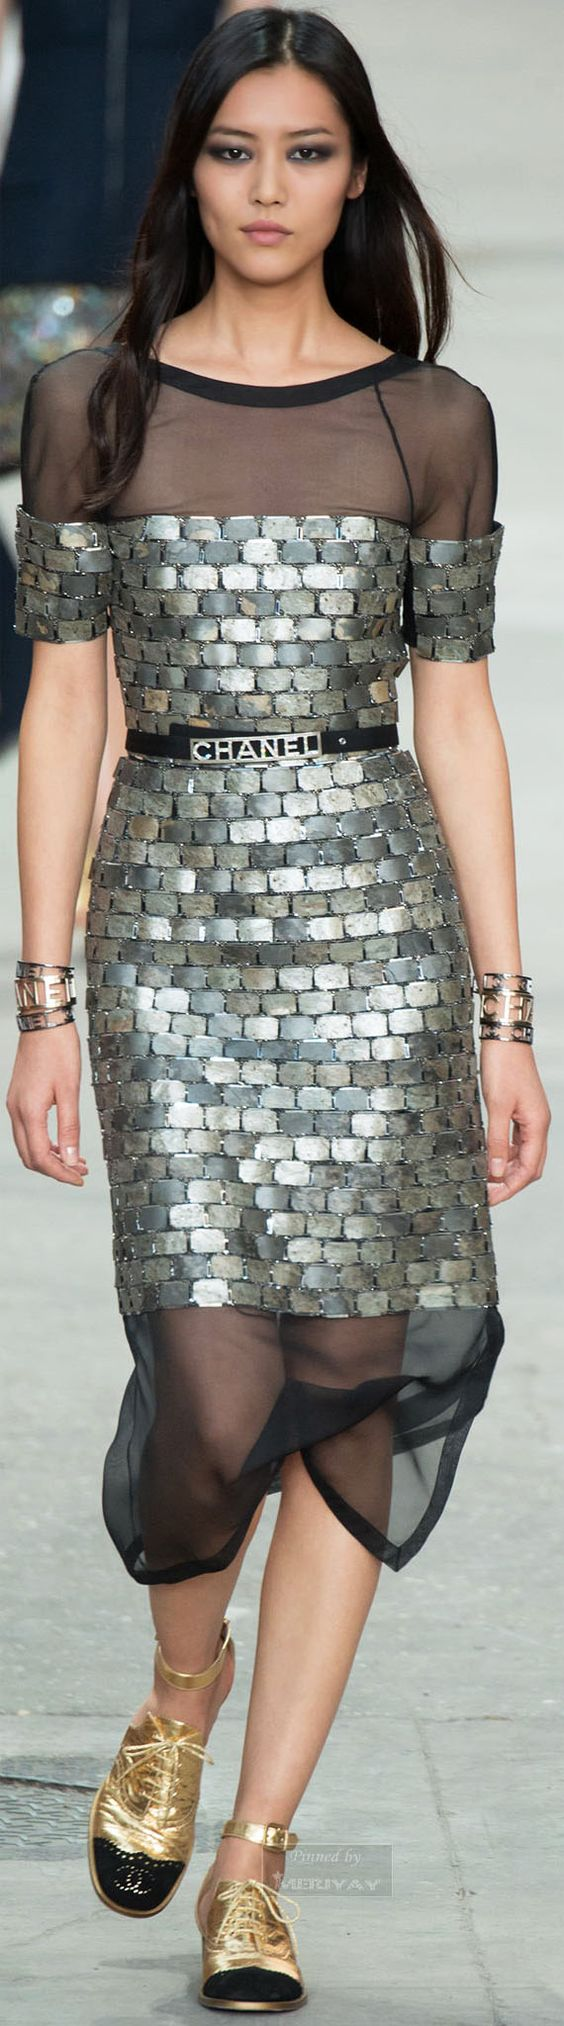 The dress is chanel - This Dress Is One Of The Best Thing On This Runway Enough Already With The Chanel Labeling That Belt And Those Shoes Almost Ruin The Dress